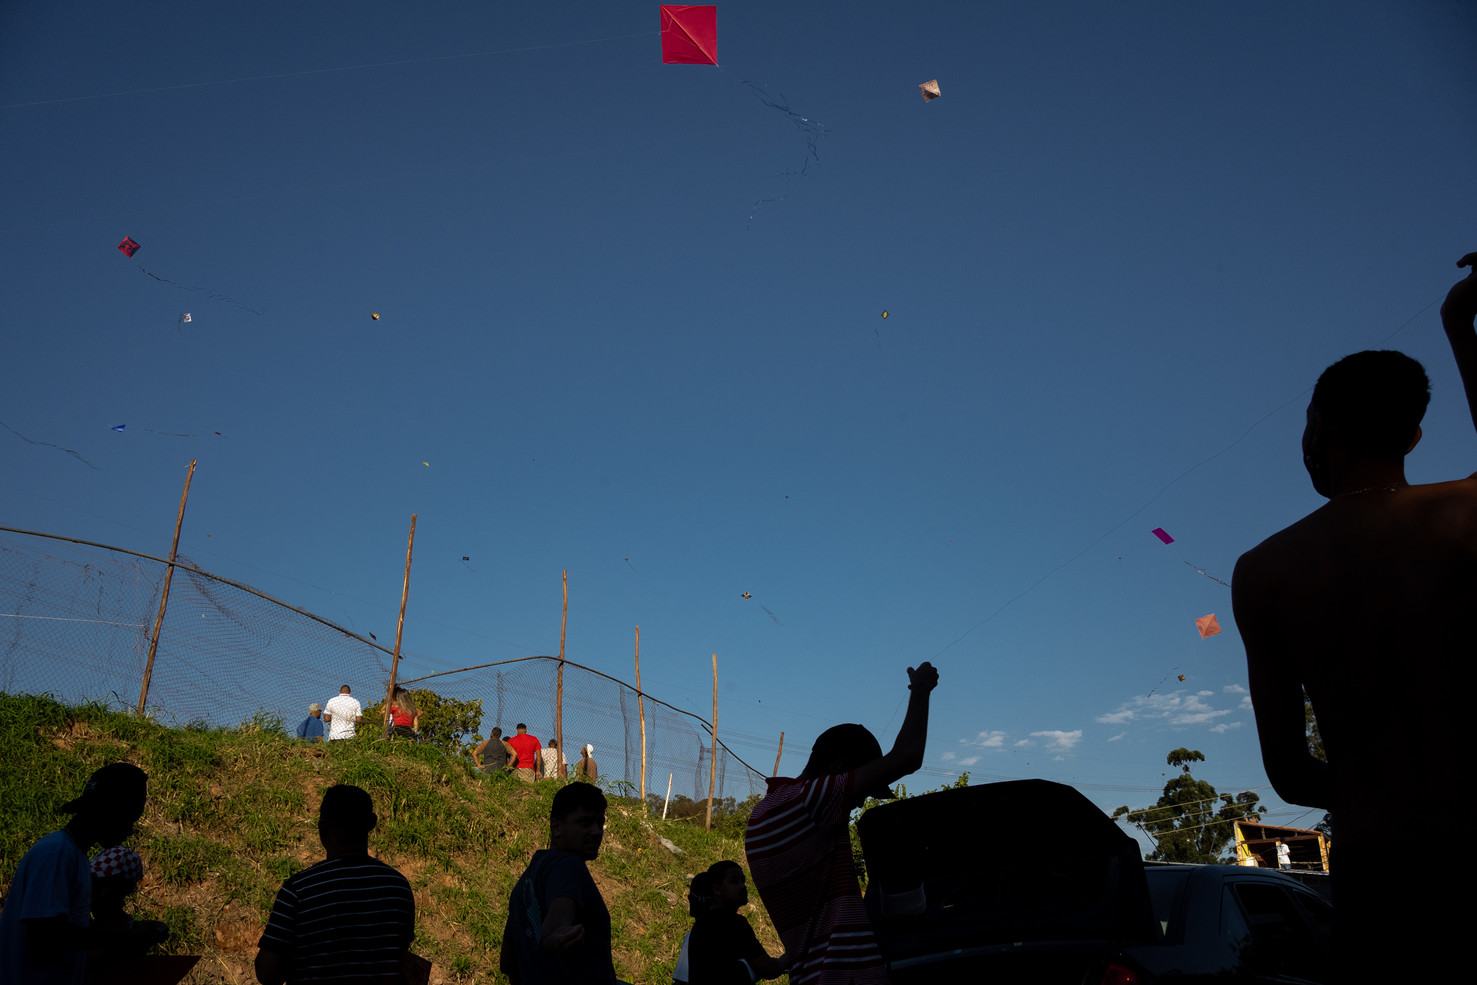 Kite Championship amid coronavirus disease (COVID-19) outbreak in Favelinha L.G, a slum located on the west zone of Sao Paulo capital, Brazil, July 5, 2020.